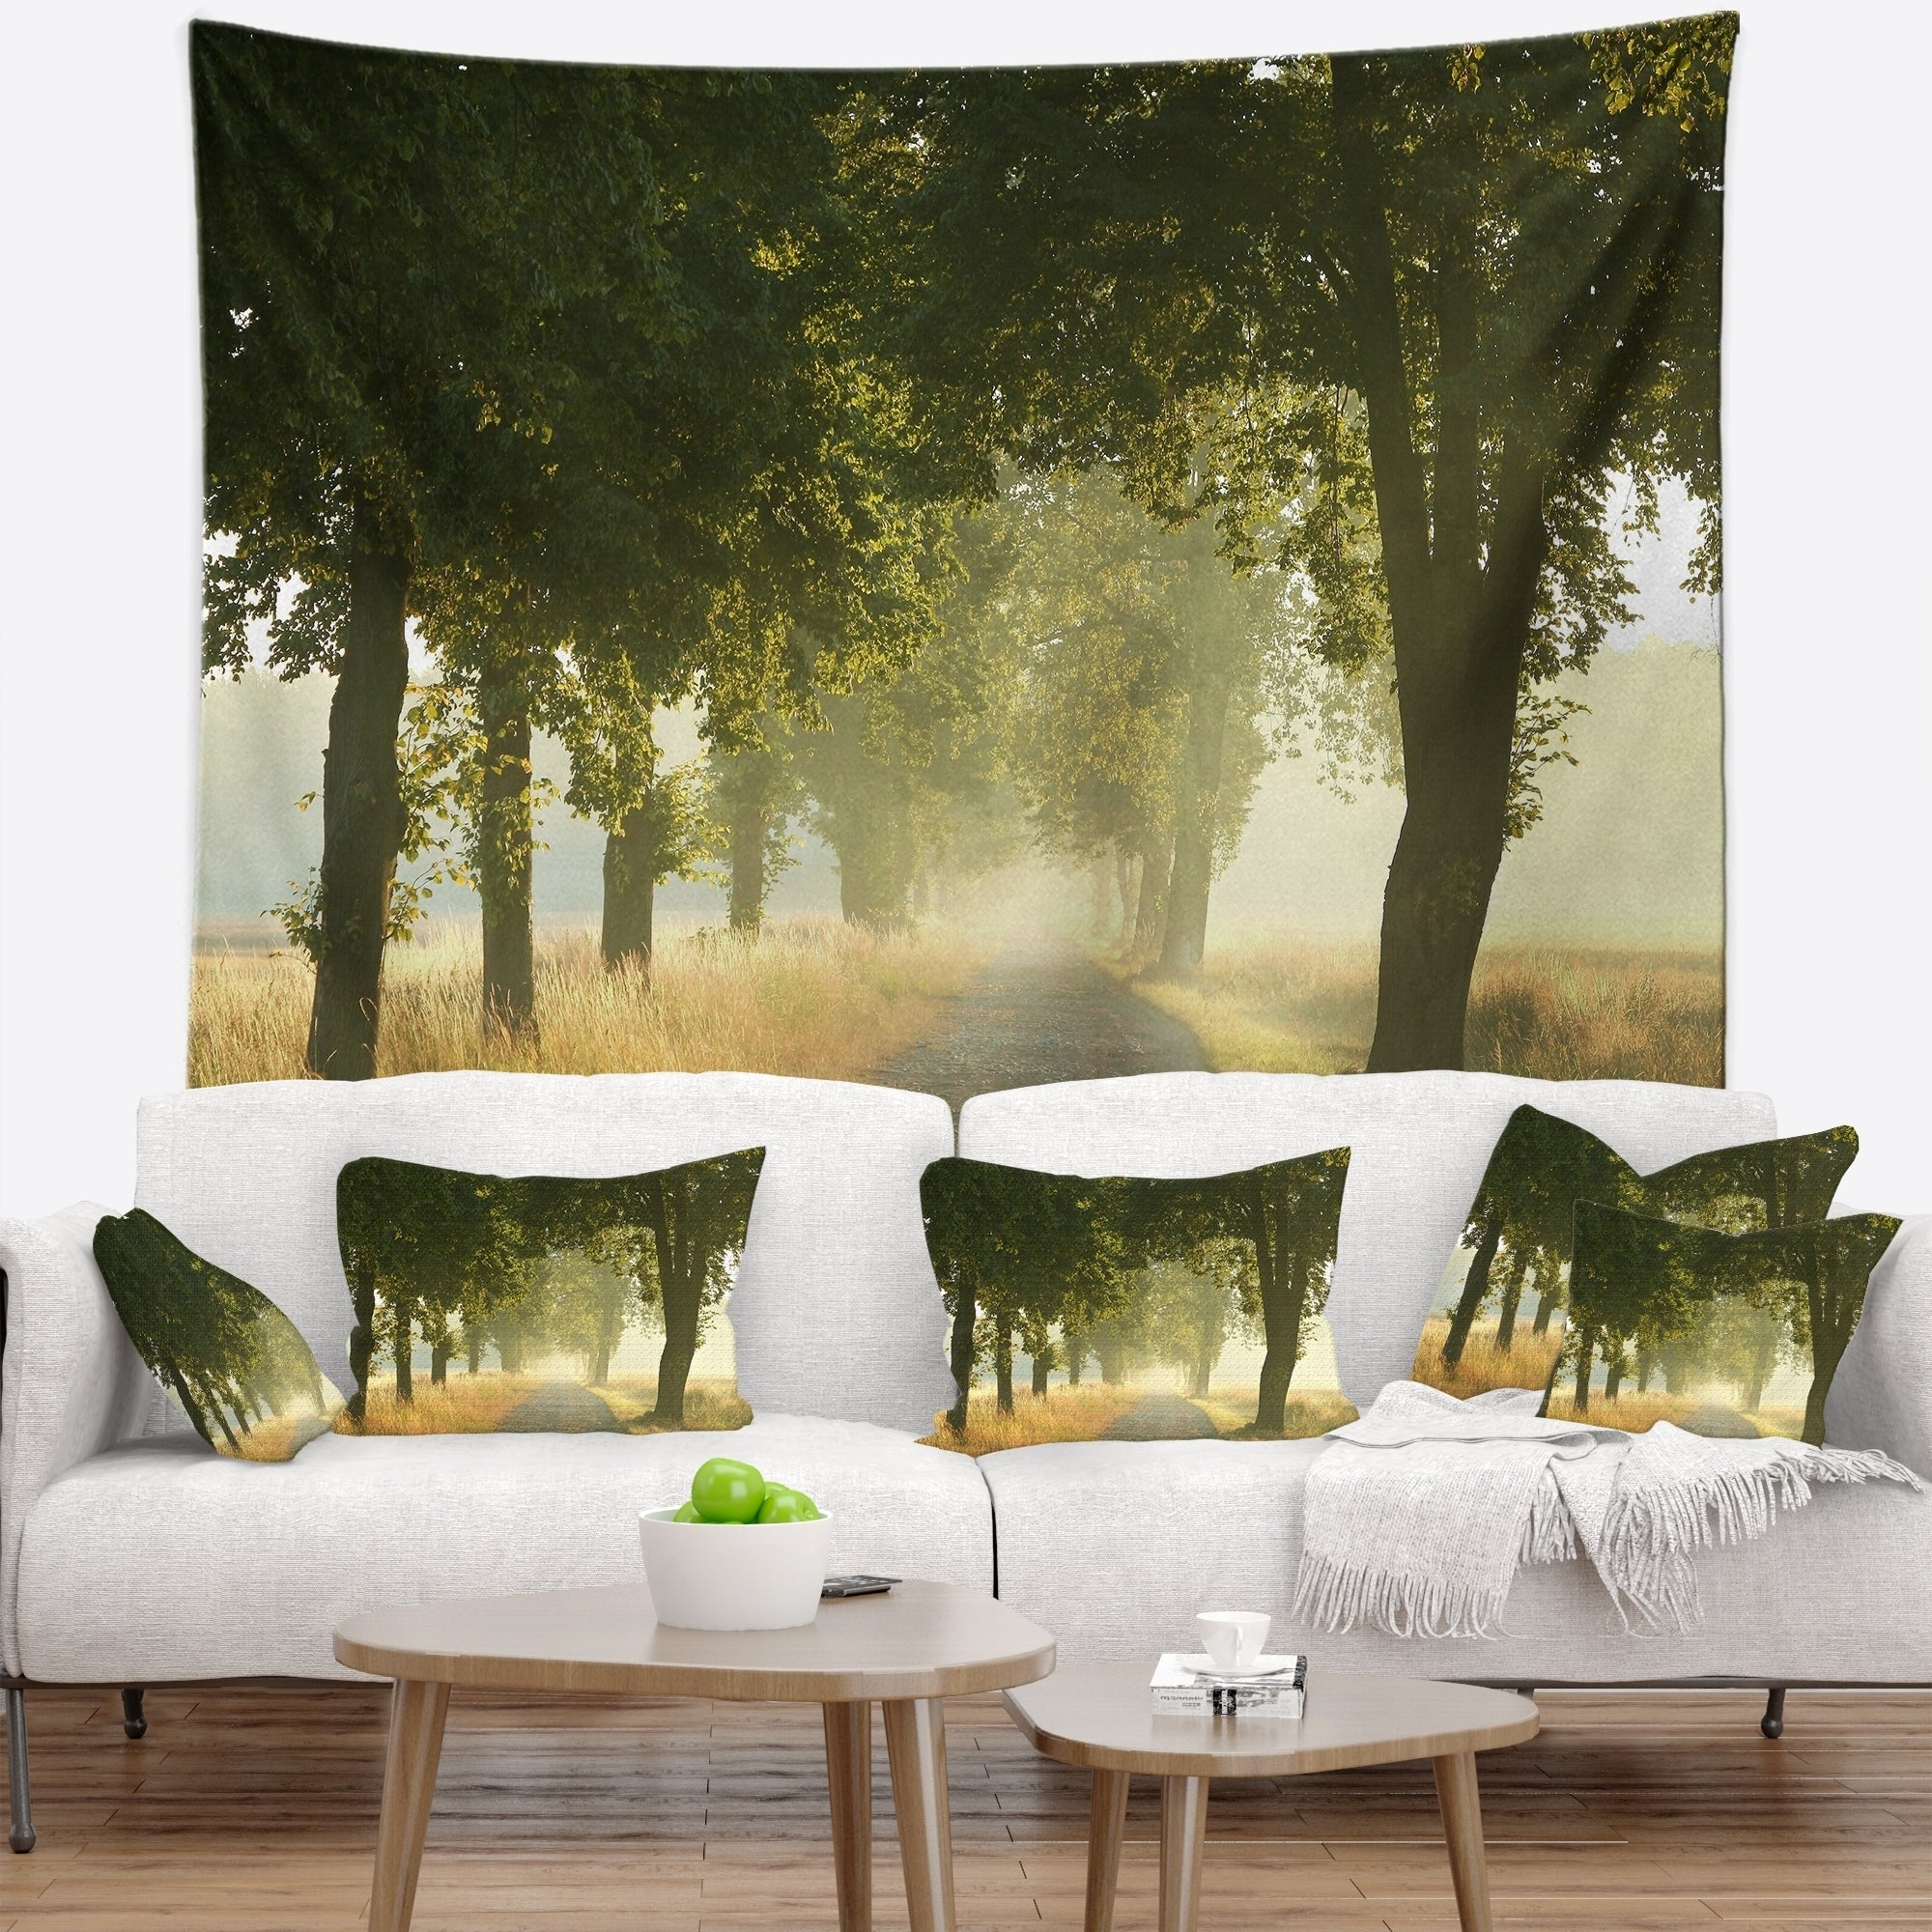 Designart Rural Road Under Big Green Trees Landscape Photography Wall Tapestry On Sale Overstock 20928624